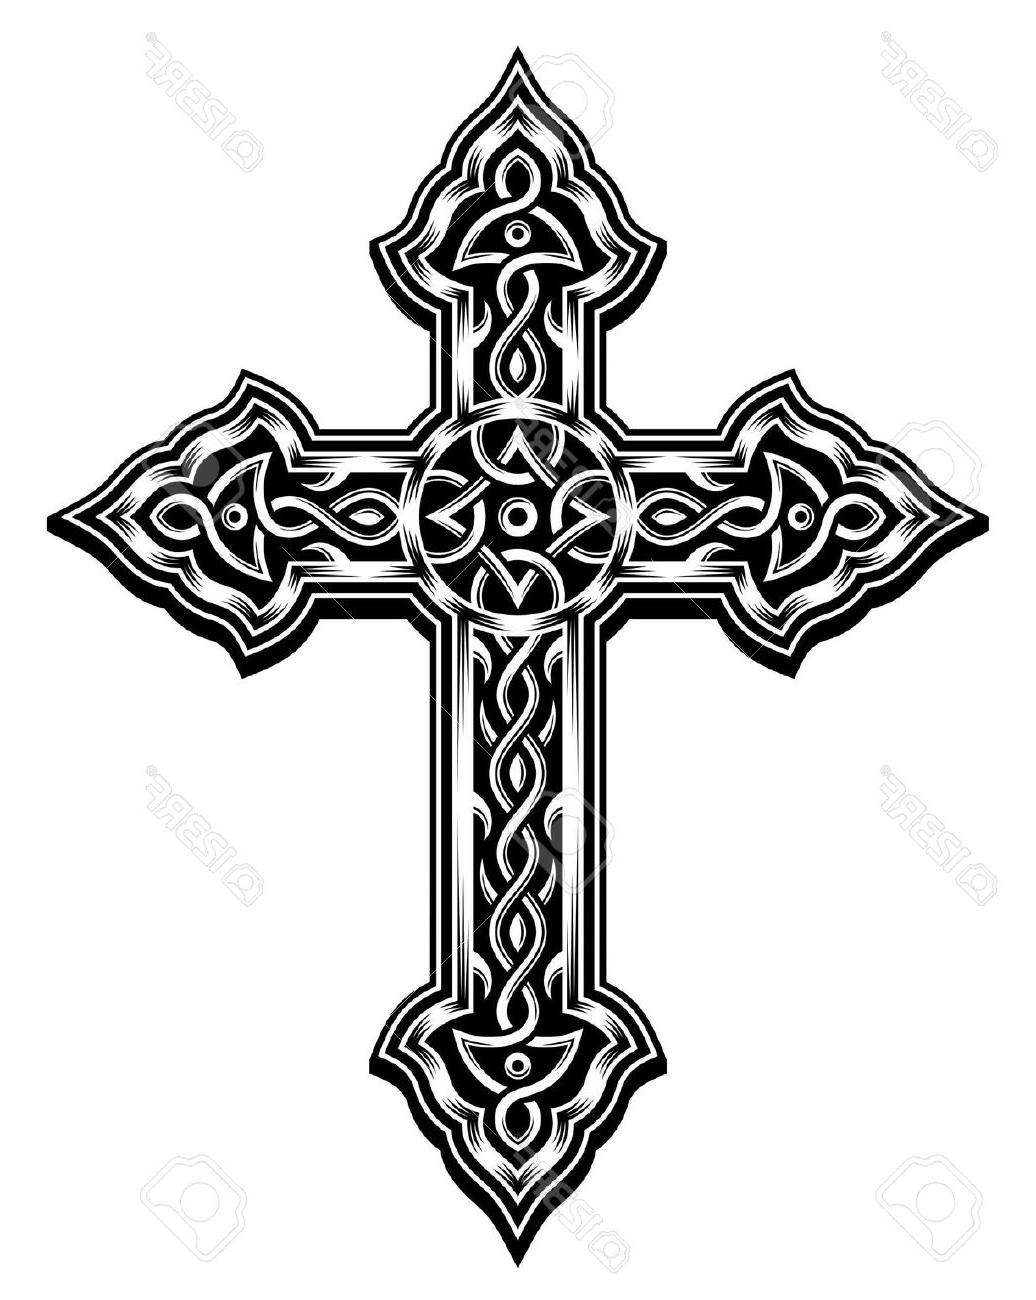 1036x1300 Best Free Ornate Cross Vector Design Free Vector Art, Images